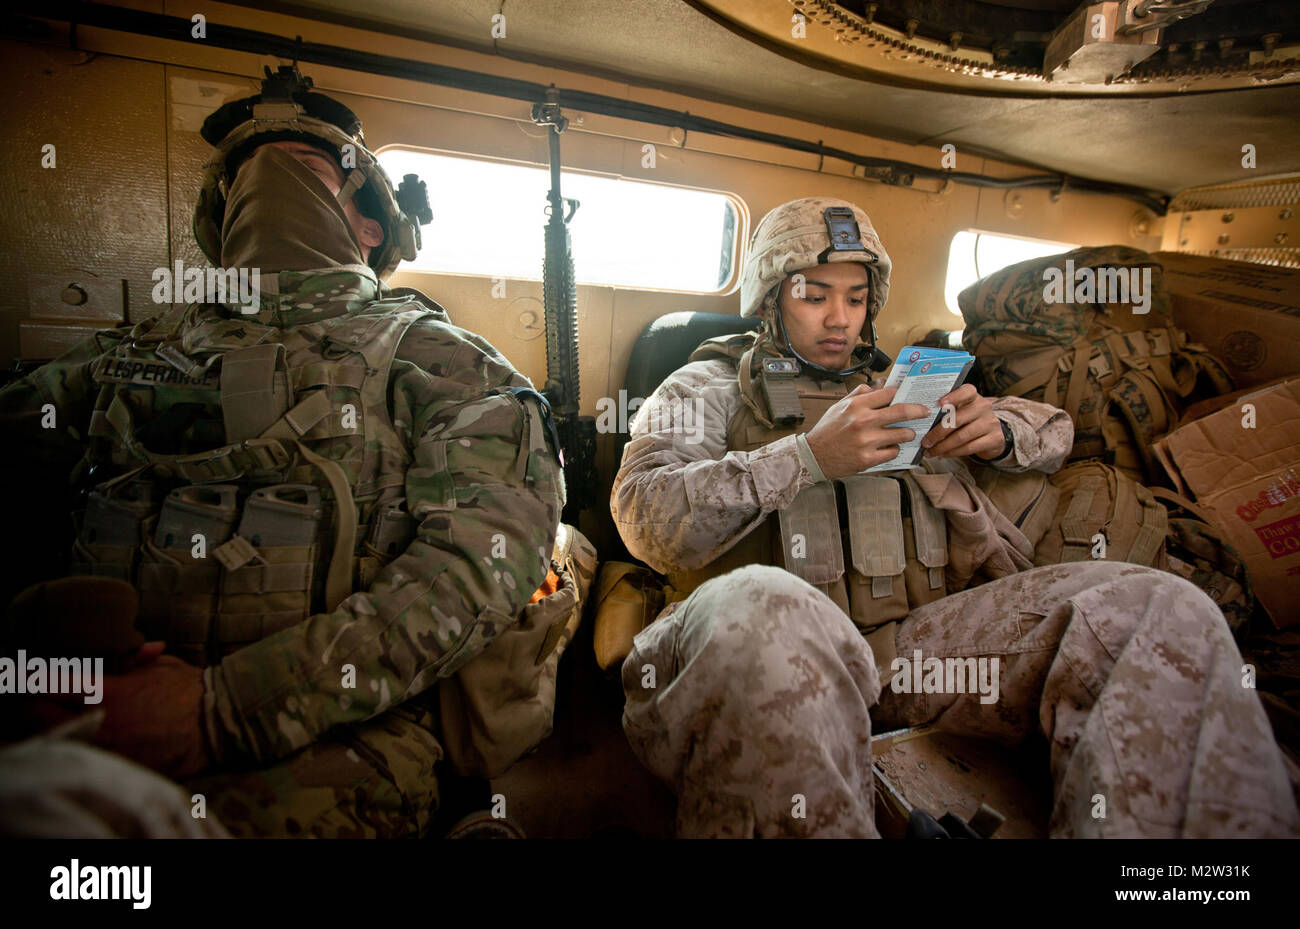 Petty Officer Third Class Michael Soto (right), the corpsman for Bridge Platoon, Alpha Company, 9th Engineer Support - Stock Image